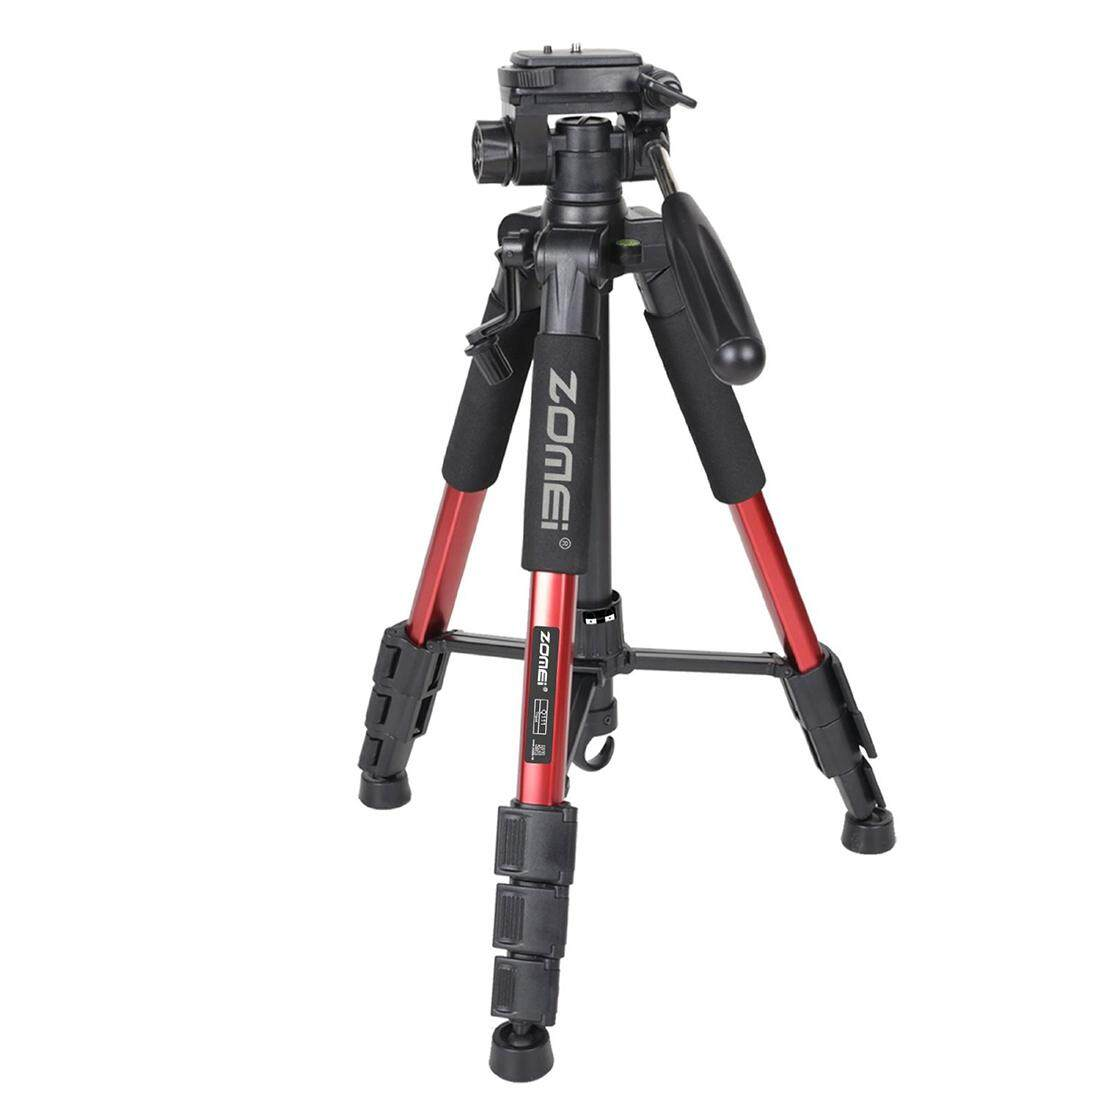 ZOMEI Q111 Portable Pro 55-inch Tripod Compact Lightweight Camera Stand with Quick Release Pan